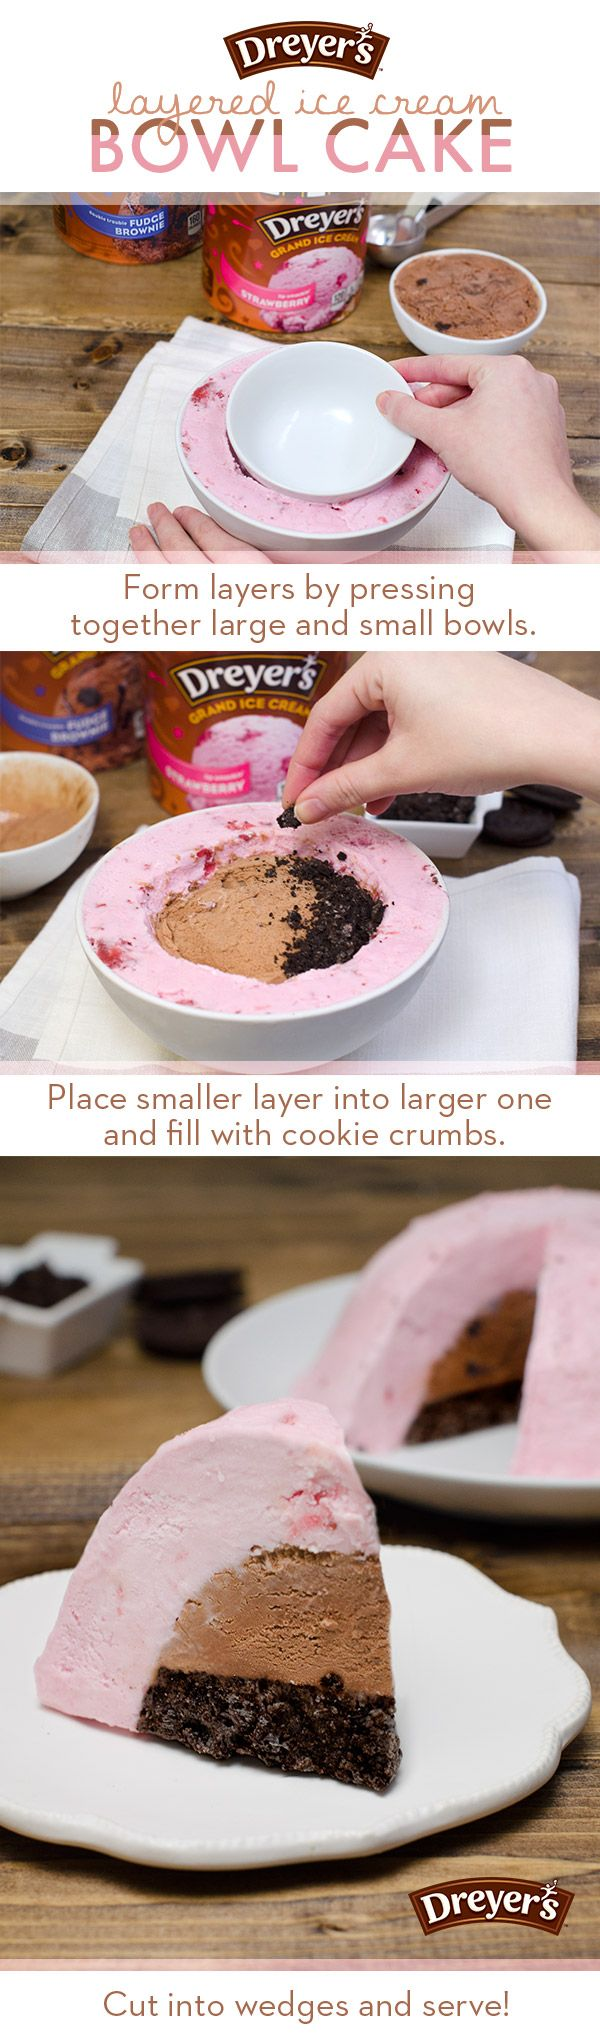 Dreyer's Layered Ice Cream Bowl Cake: It's what's on the inside (and outside) that counts! Create this layered ice cream cake by filling large and small bowls with your favorite flavors of Dreyer's ice cream. Form the outermost layer by pressing an empty bowl into it, and place the smaller layer into the larger one when finished. Once the layers are pieced together, fill any extra space with crushed chocolate cookies!